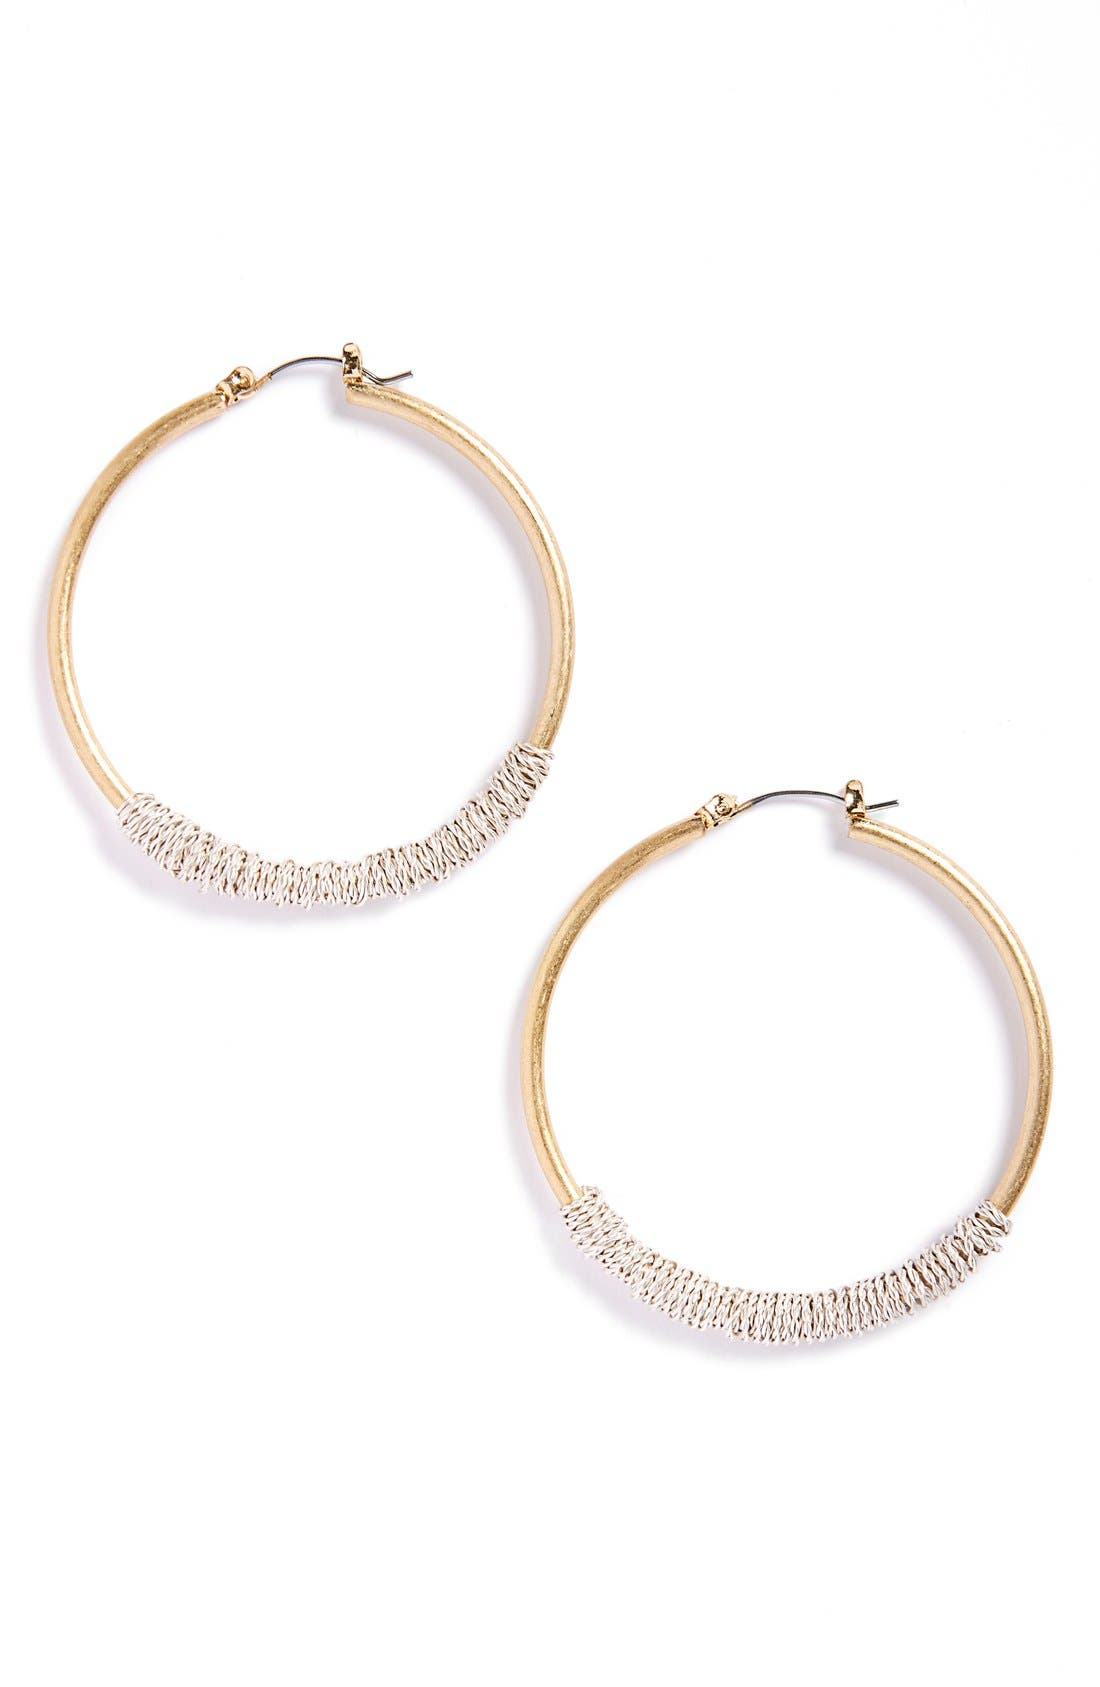 Wire Wrapped Crystal Hoop Earrings,                             Main thumbnail 1, color,                             710